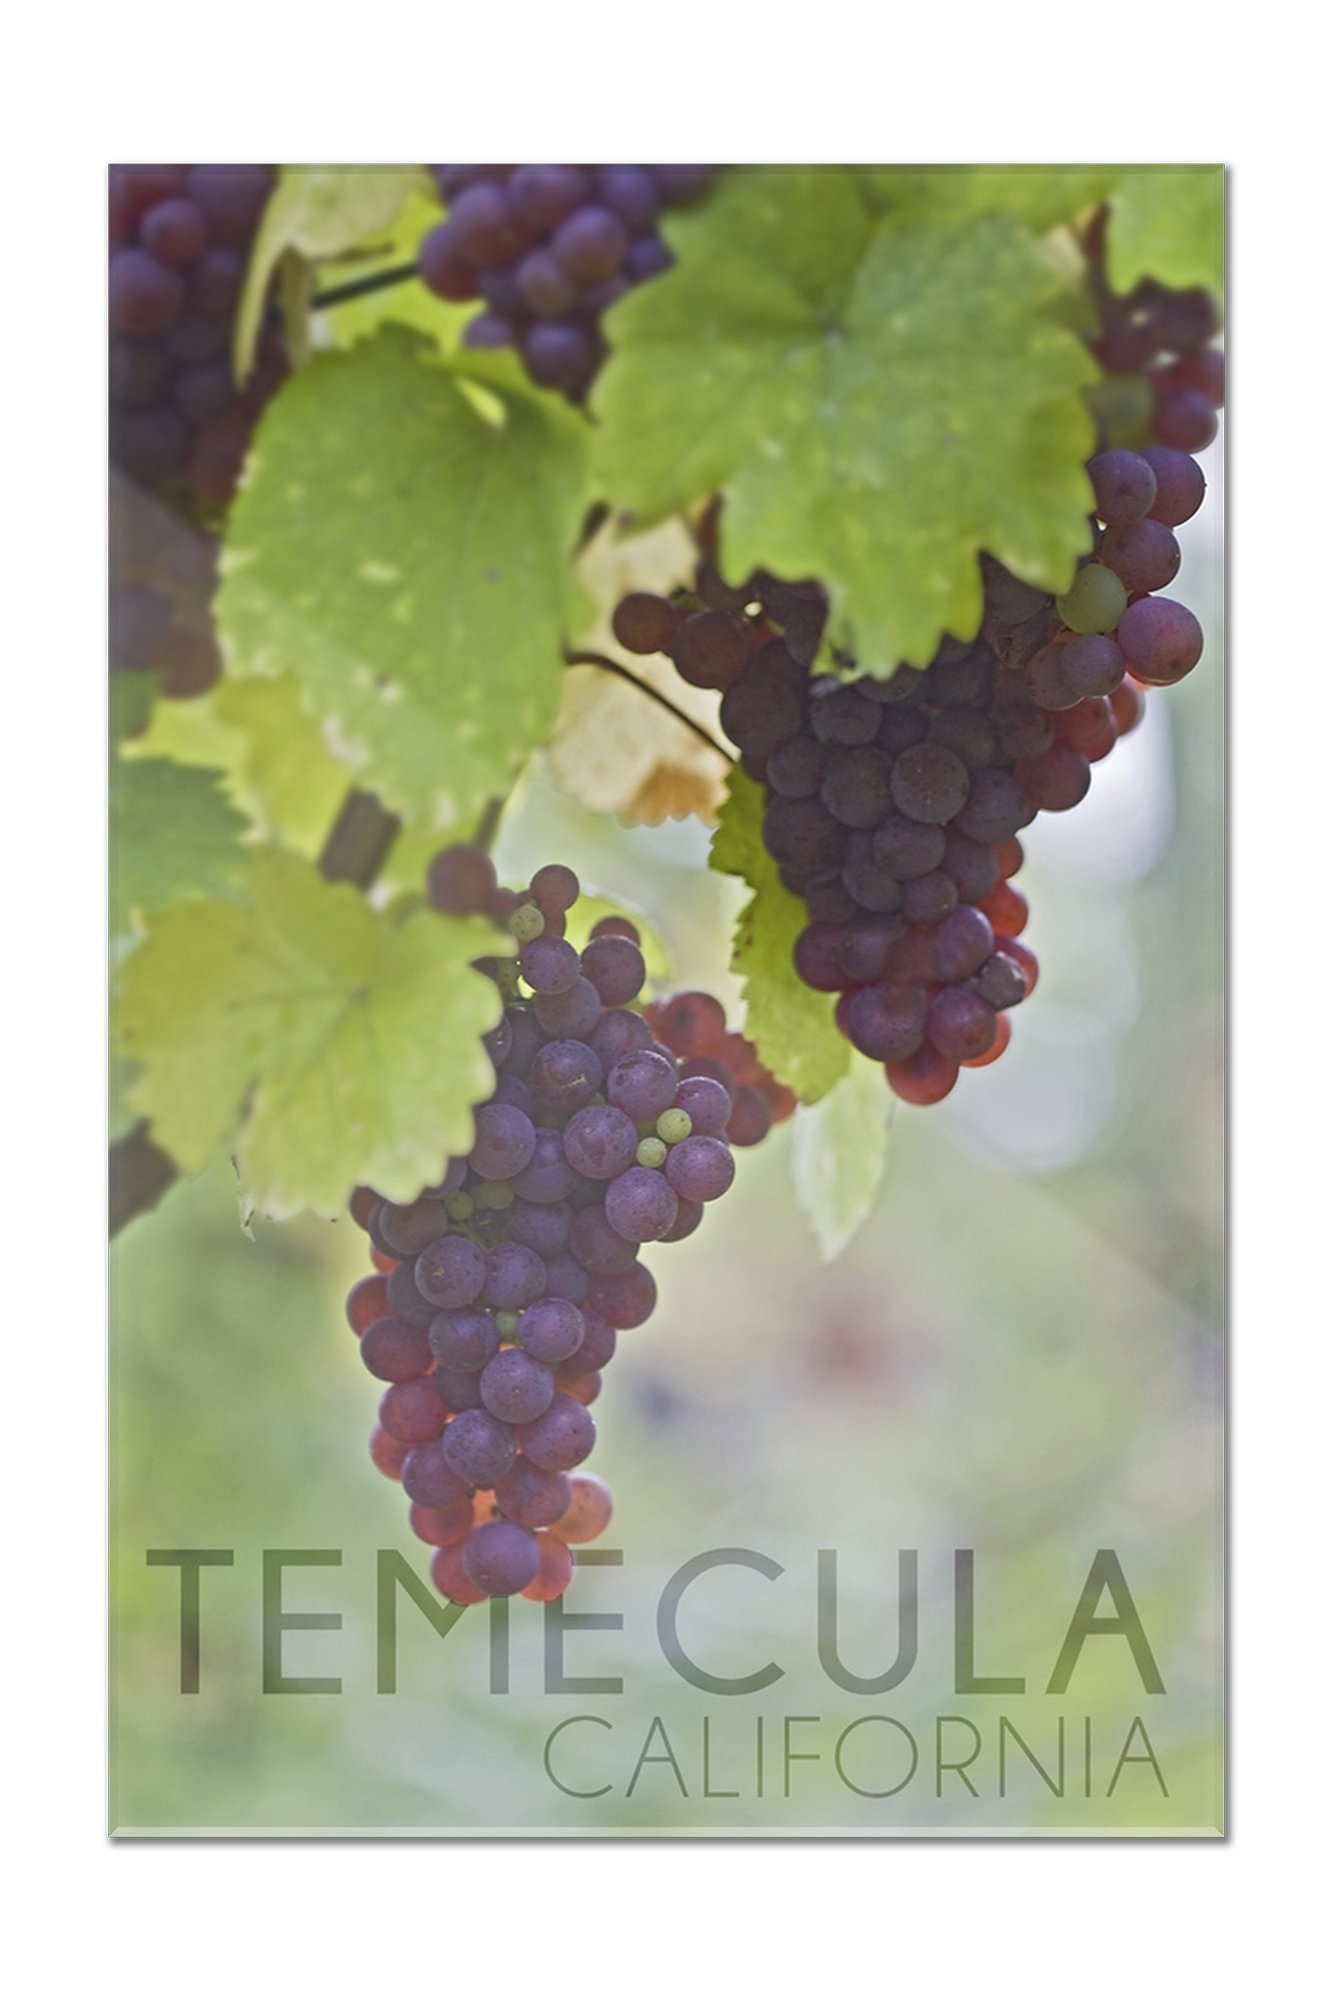 Temecula, California - Wine Grapes on Vine